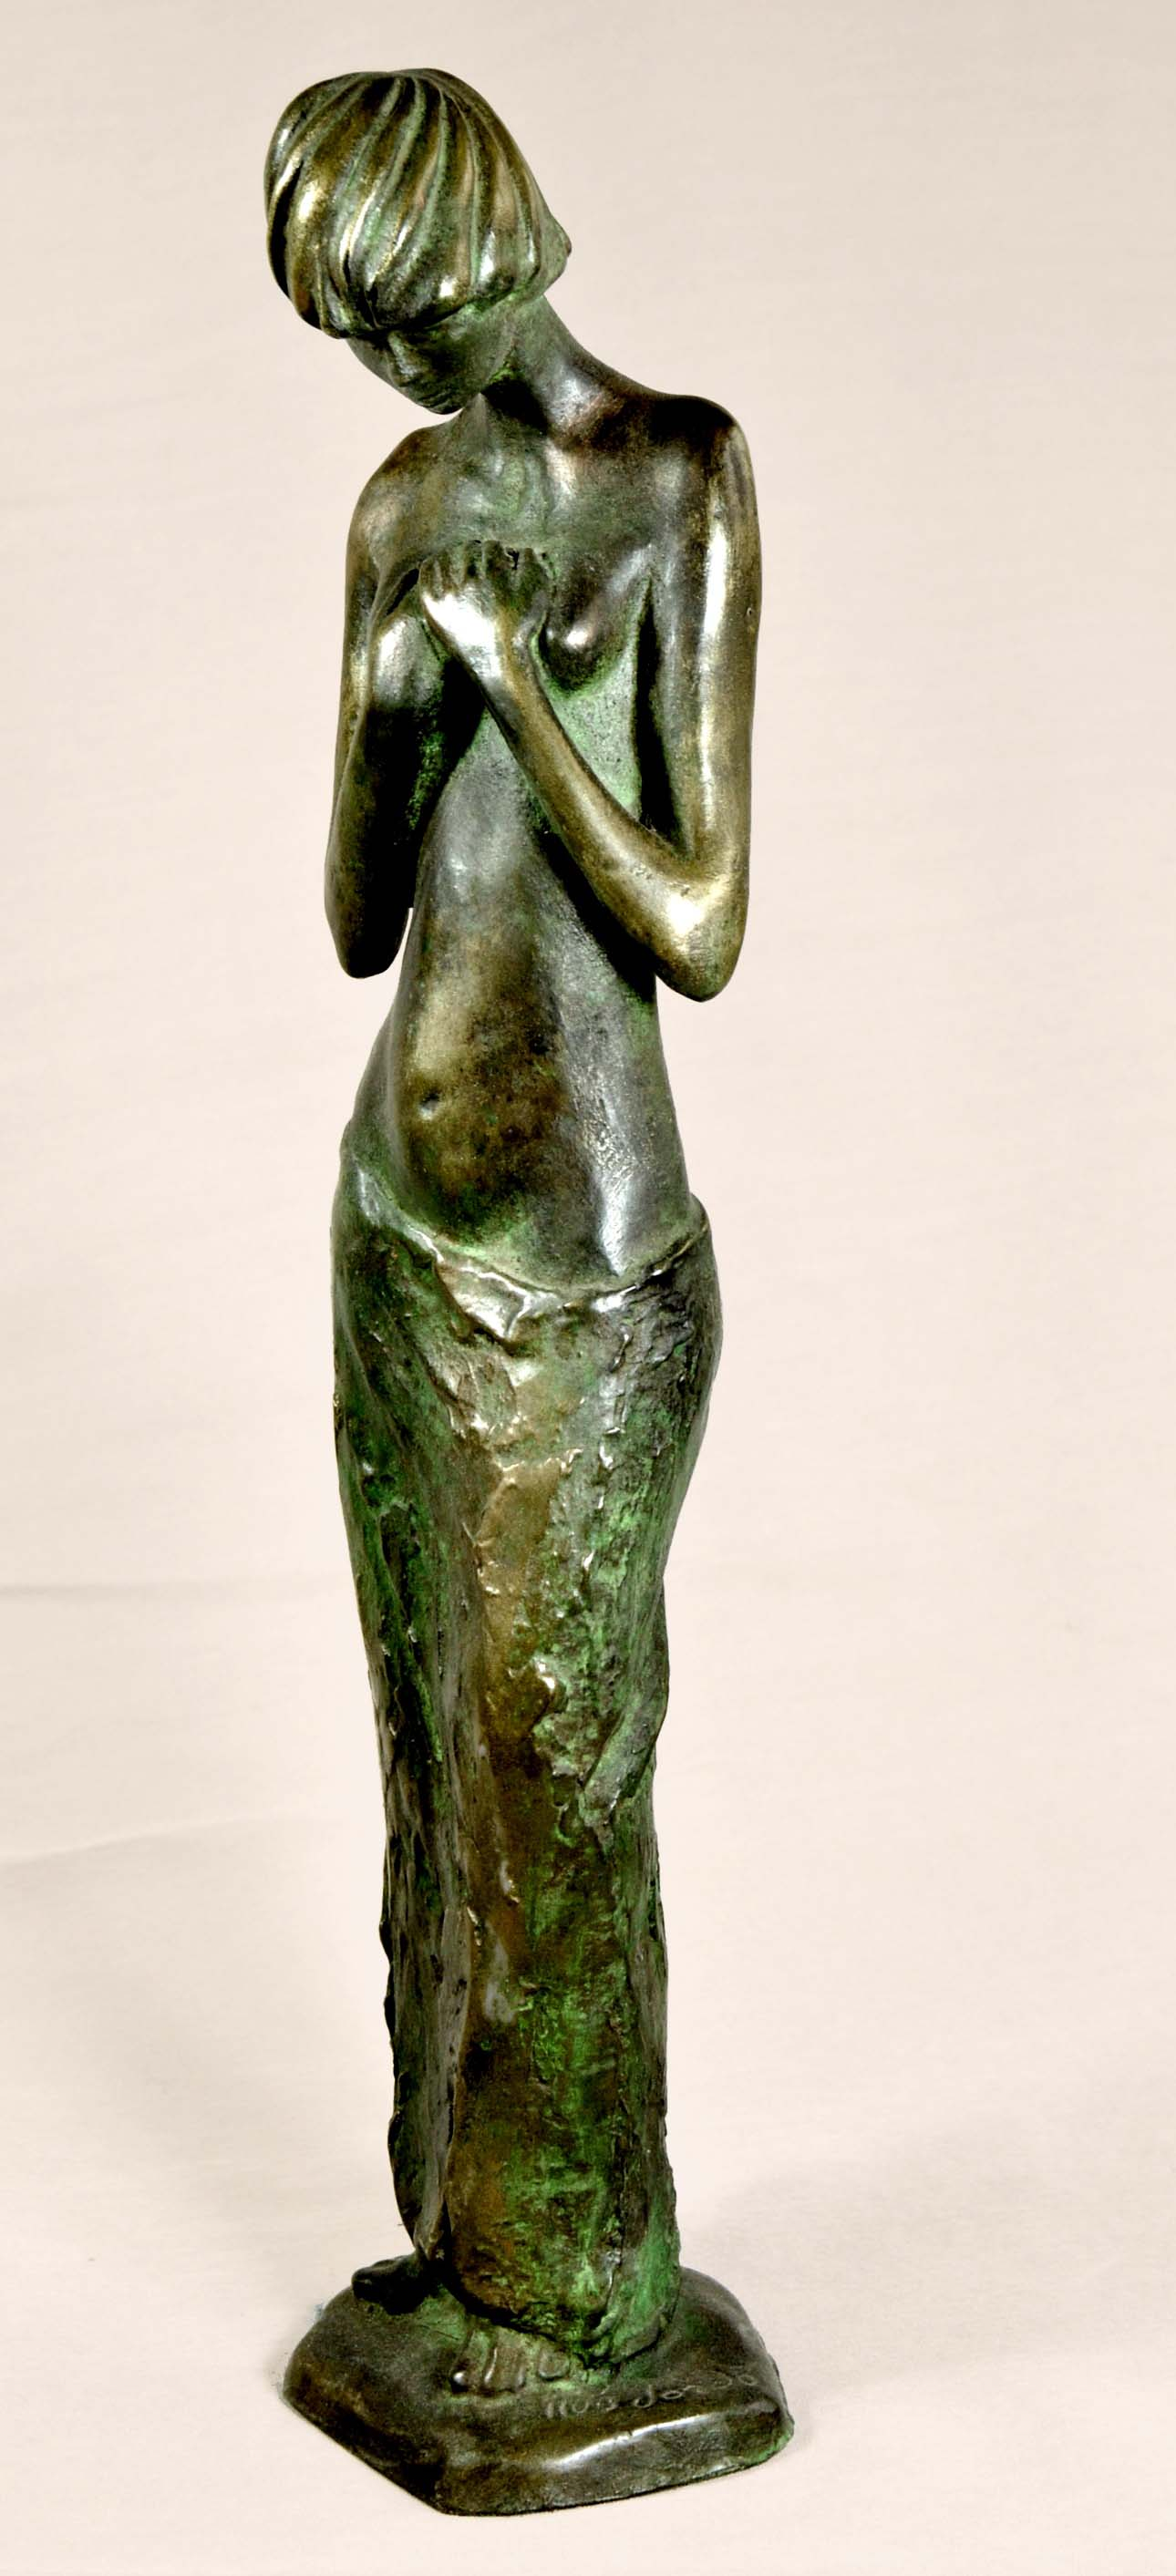 Sculpture of a girl with nude torso